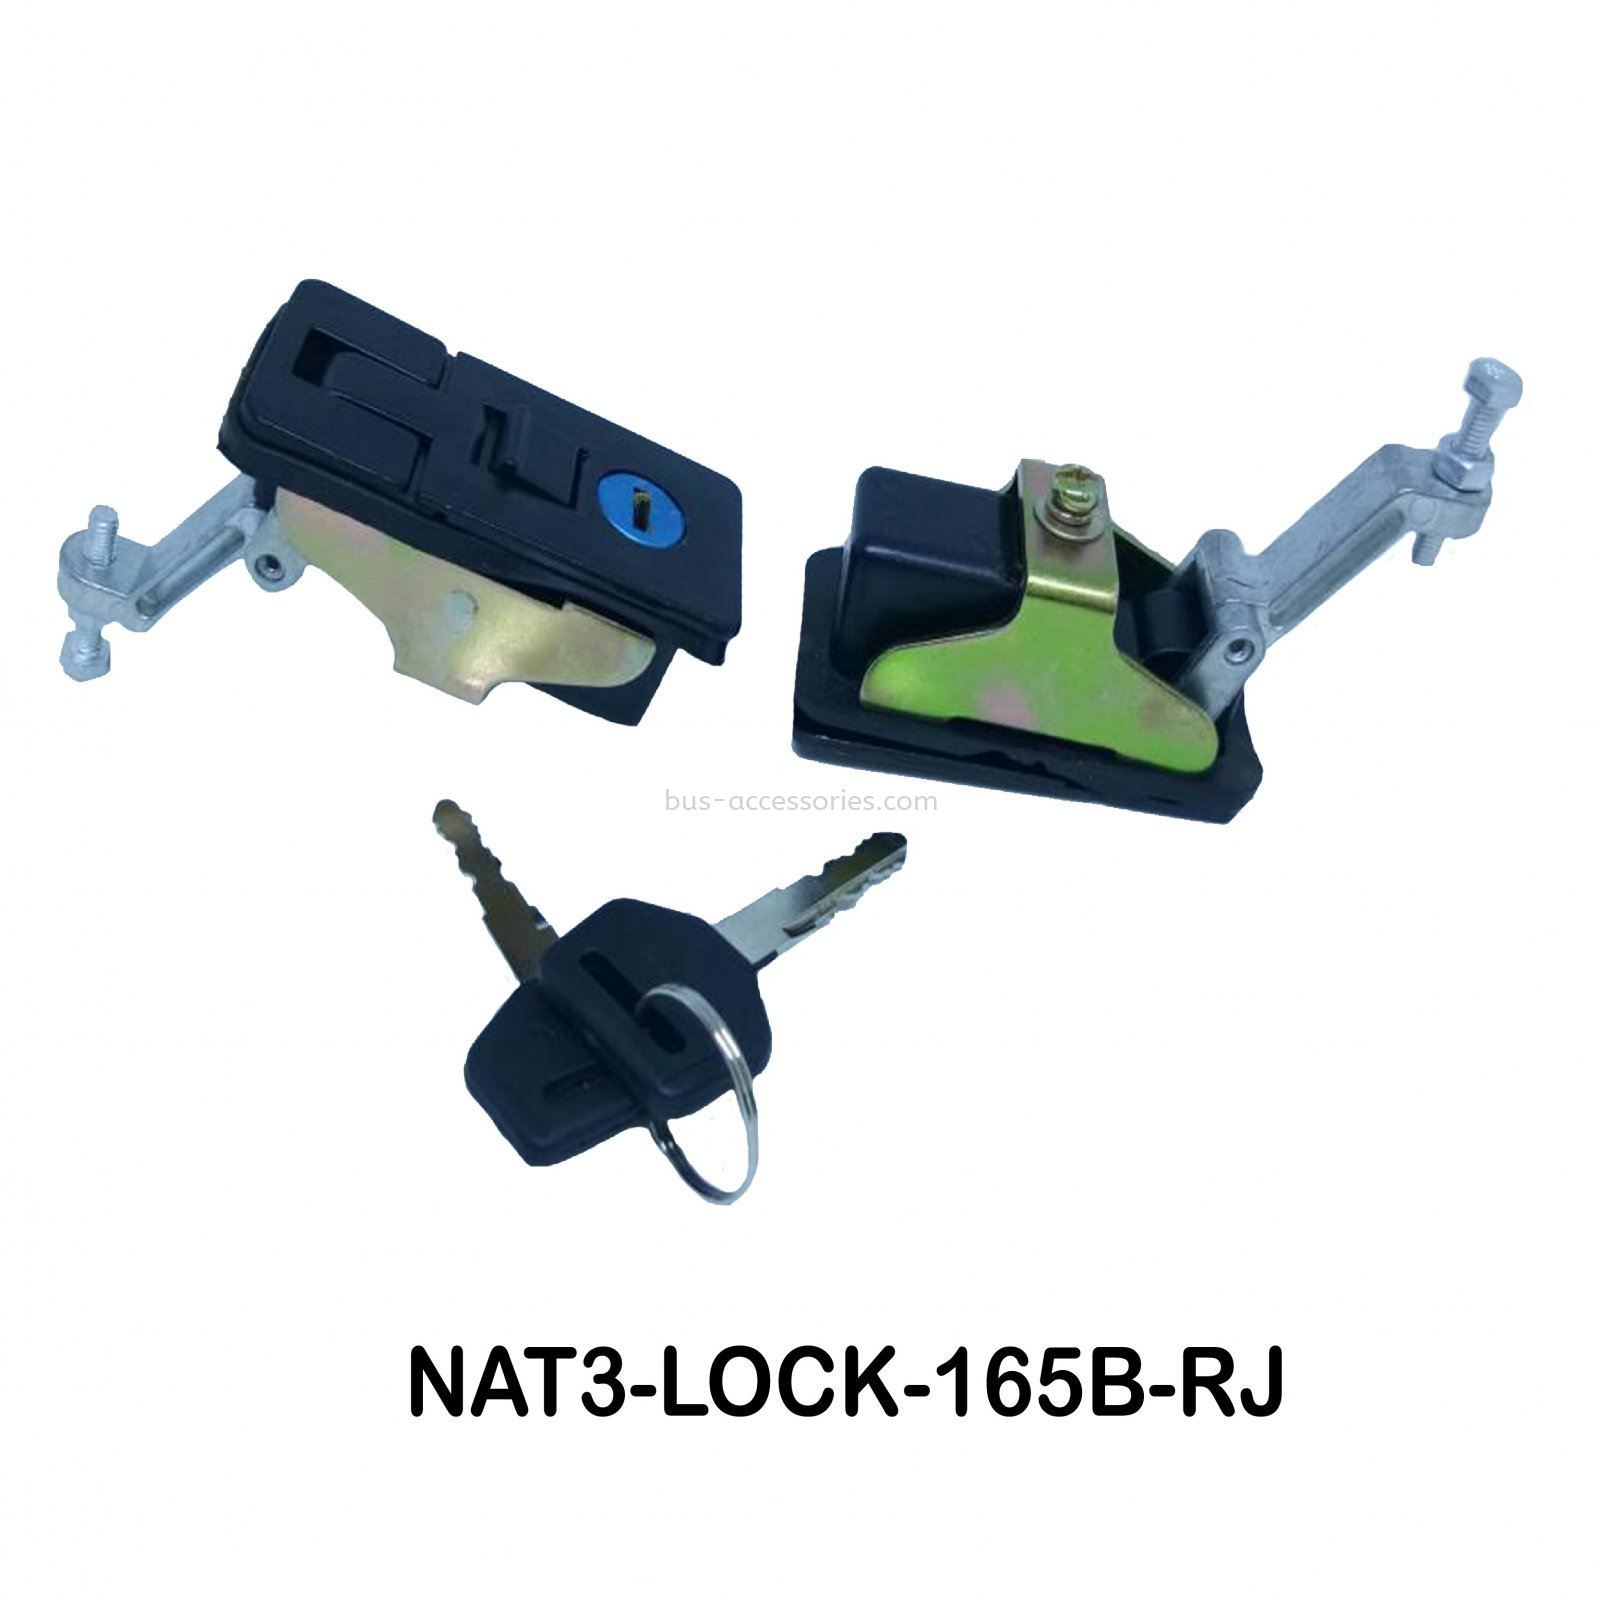 COMPARTMENT LOCK